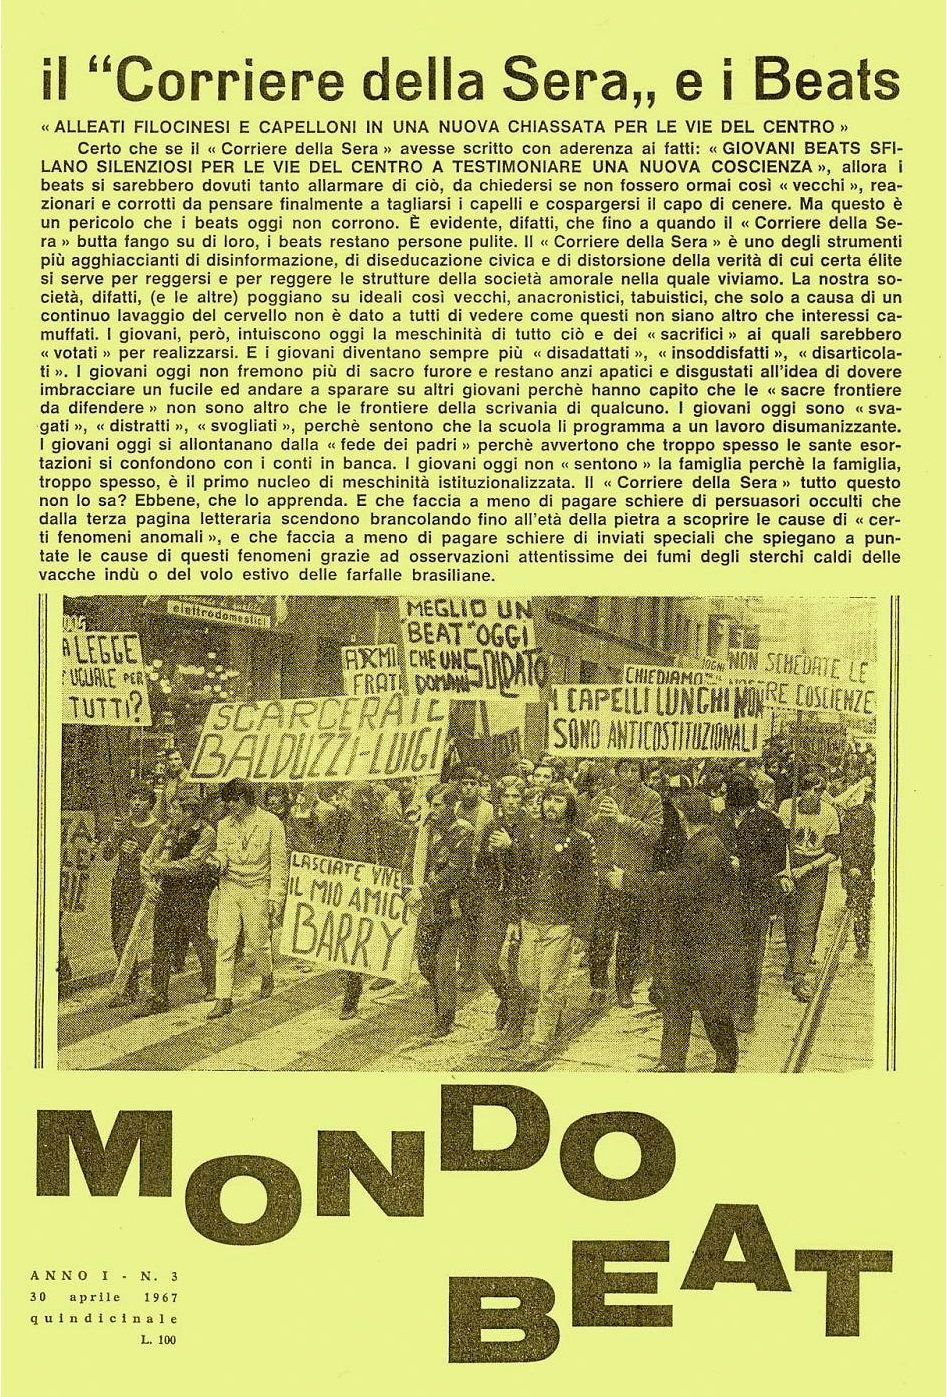 The fifth issue of Mondo Beat magazine - Edition 8,000 copies - Milan, April 30, 1967